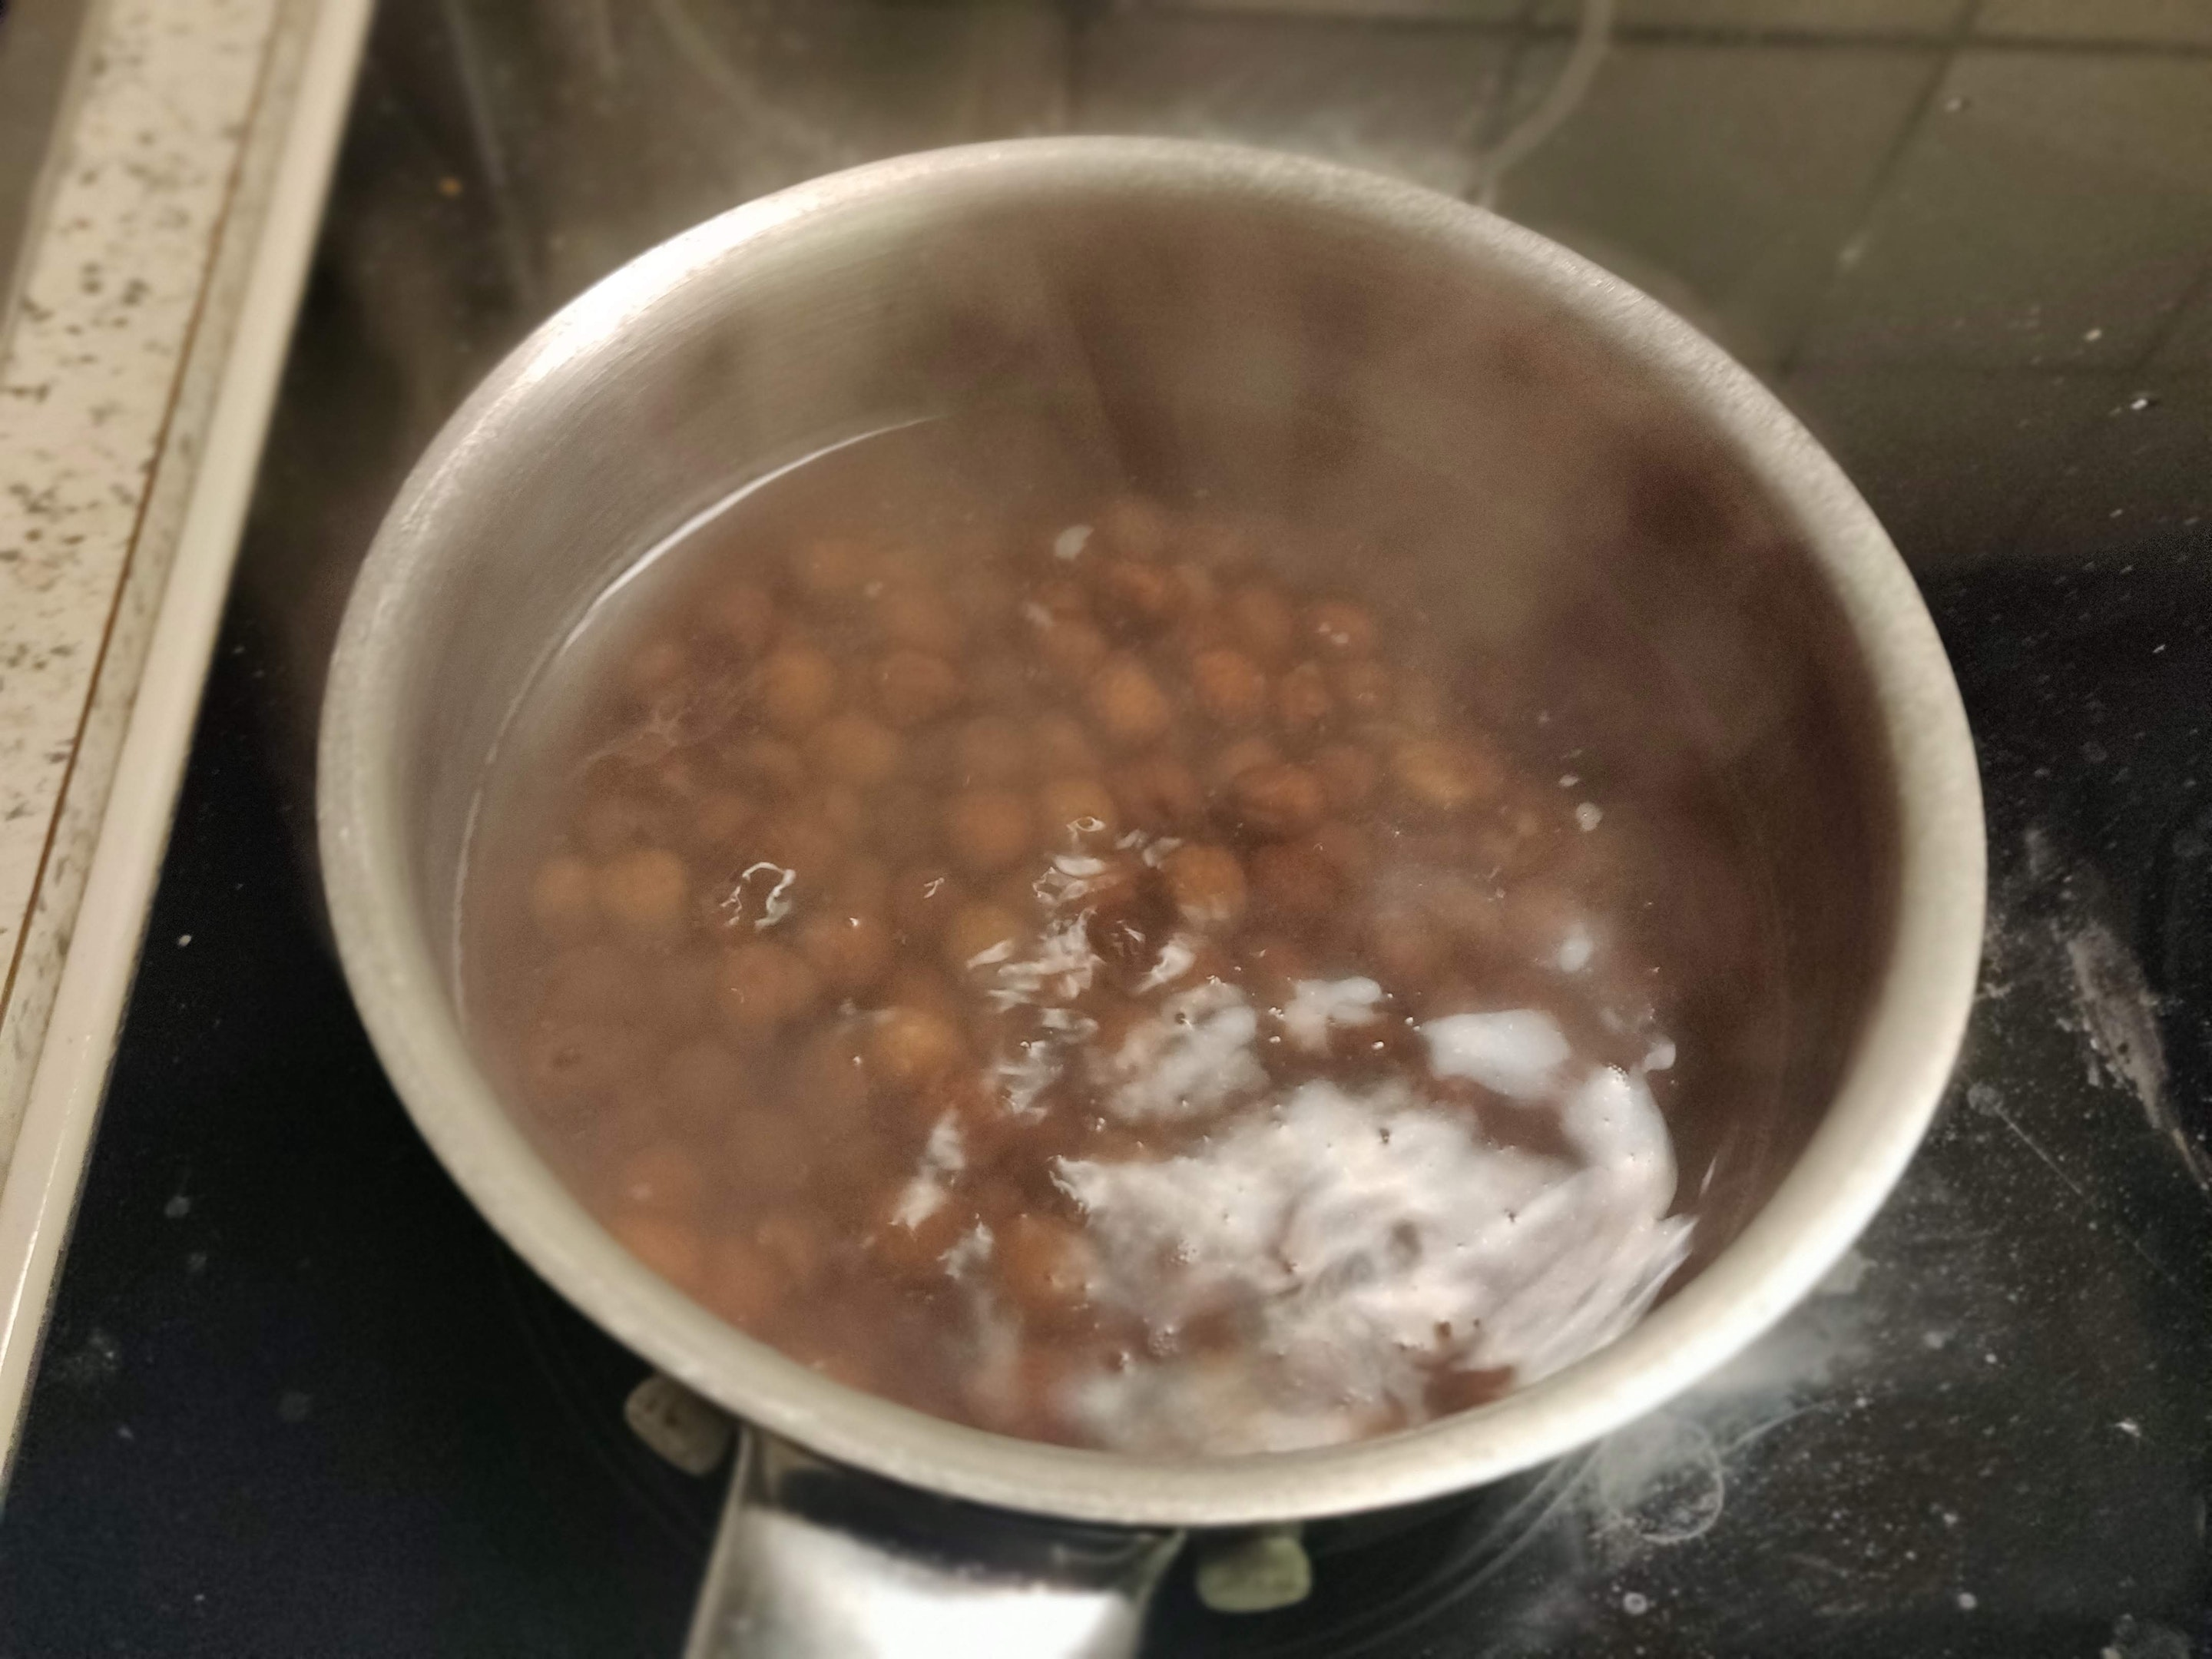 Boil the peas in water